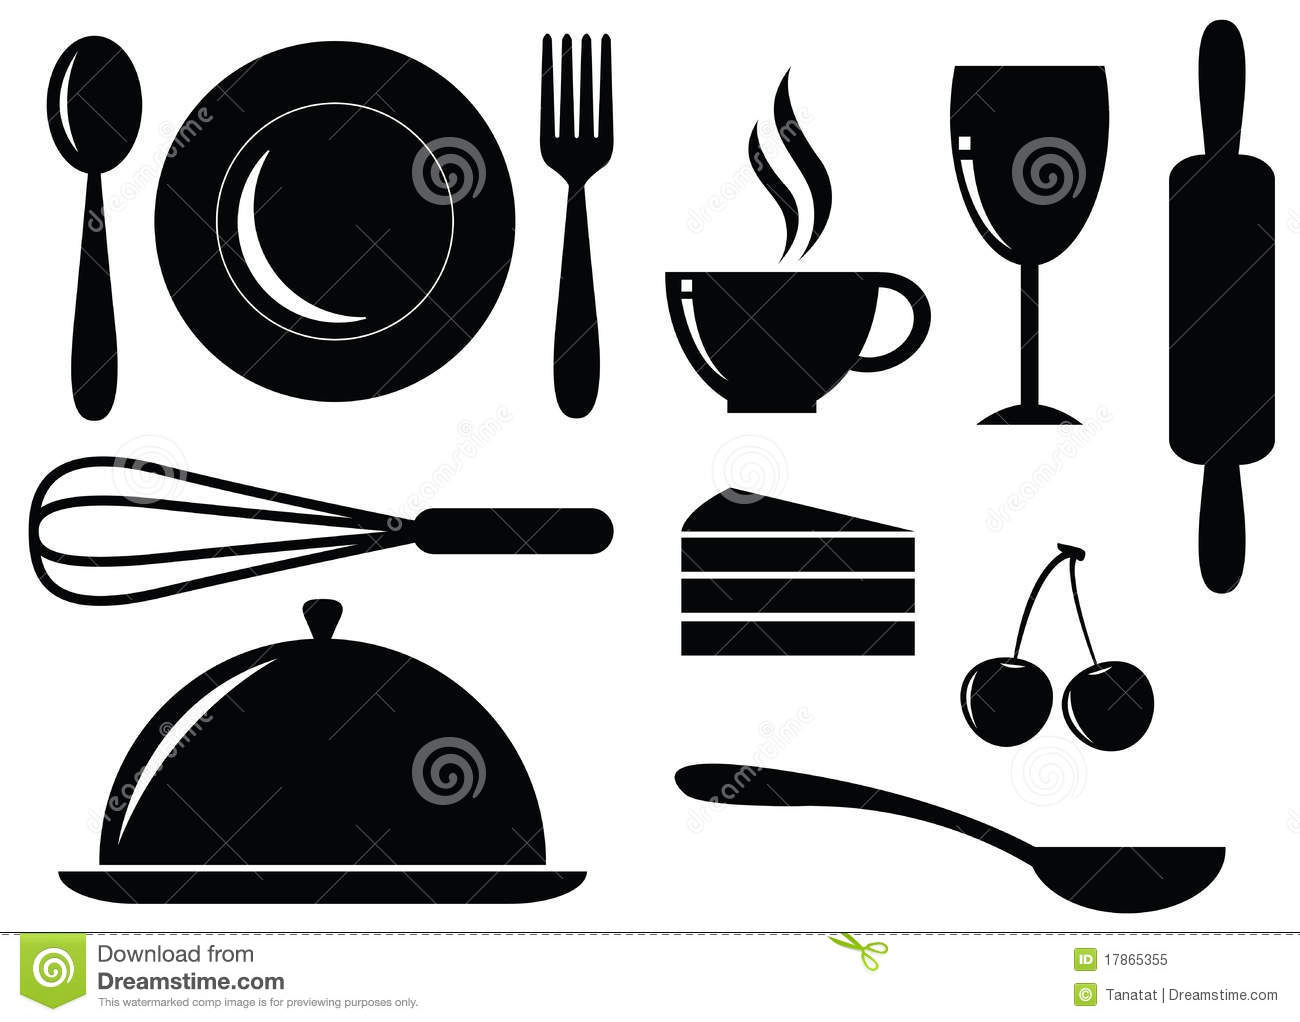 ... Silhouette of food,drink,bakery and coffee icons on white background: www.dreamstime.com/royalty-free-stock-photo-vector-silhouette-food...